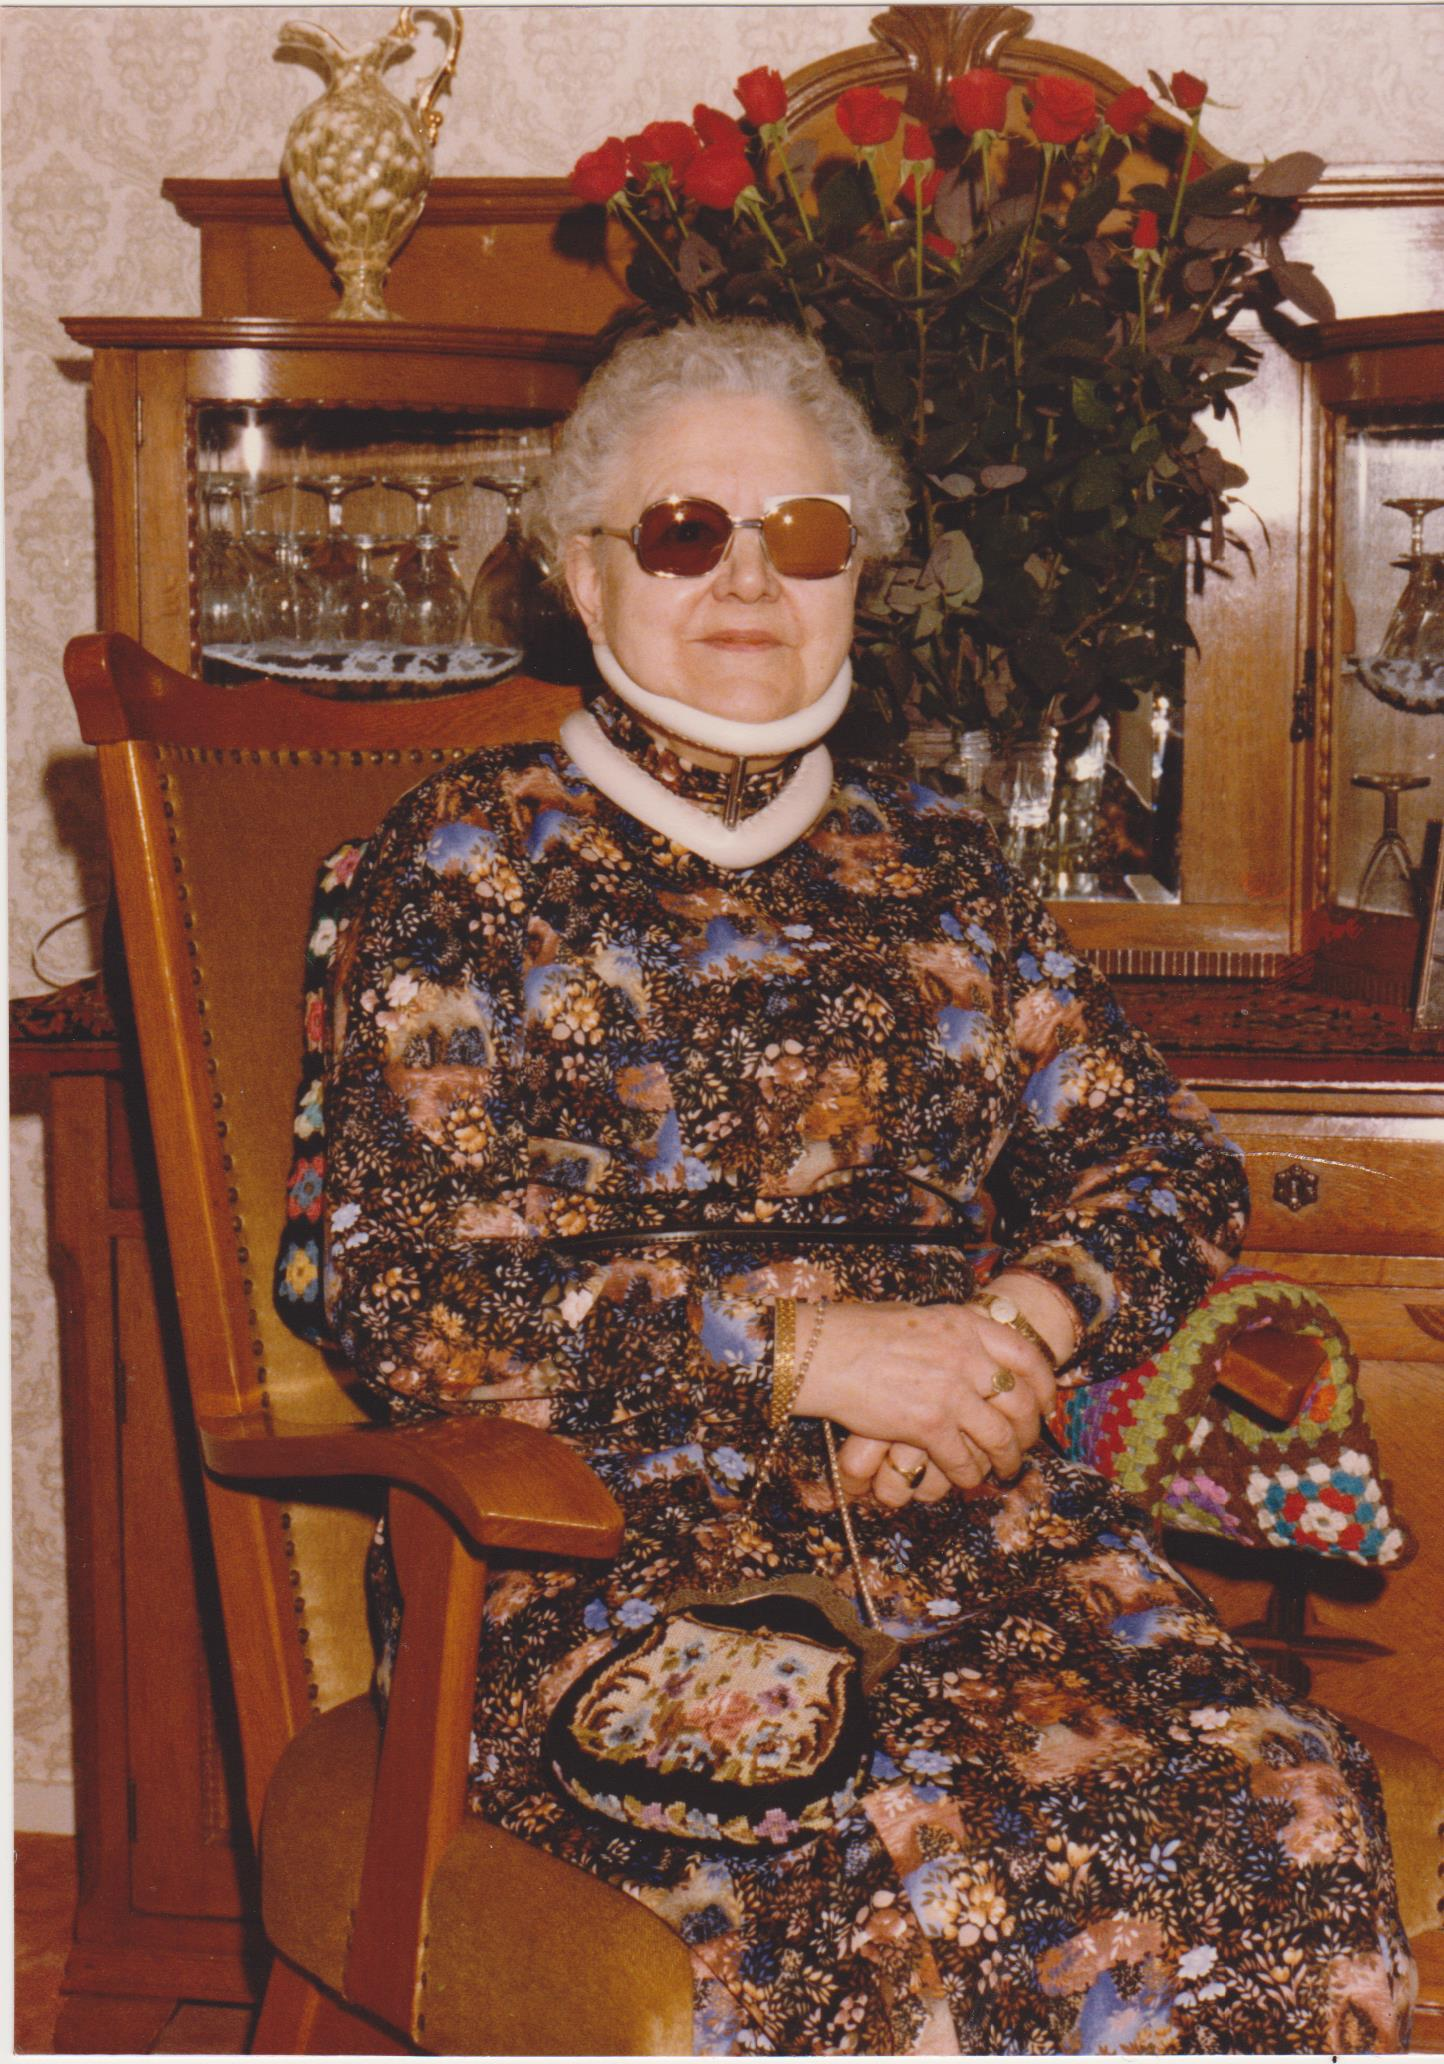 Willemina Keijzer 1901-2001 in 1980